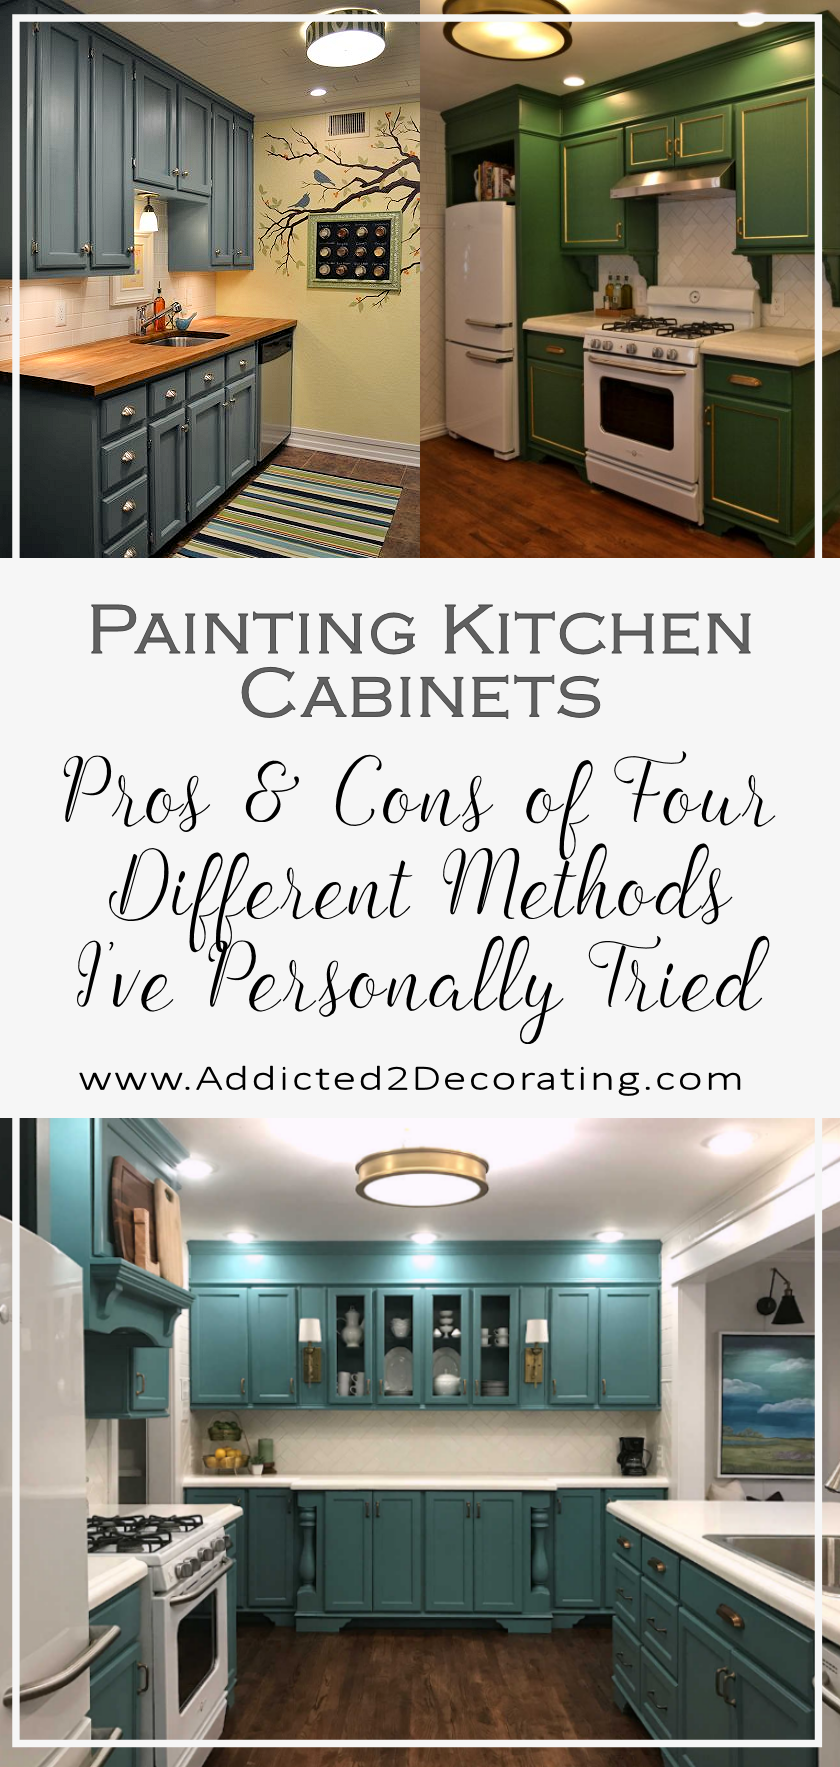 Painting Kitchen And Bathroom Cabinets Pros Cons Of Four Different Methods I Ve Personally Used Addicted 2 Decorating Painting Kitchen Cabinets Kitchen Cabinets In Bathroom Kitchen Cabinets